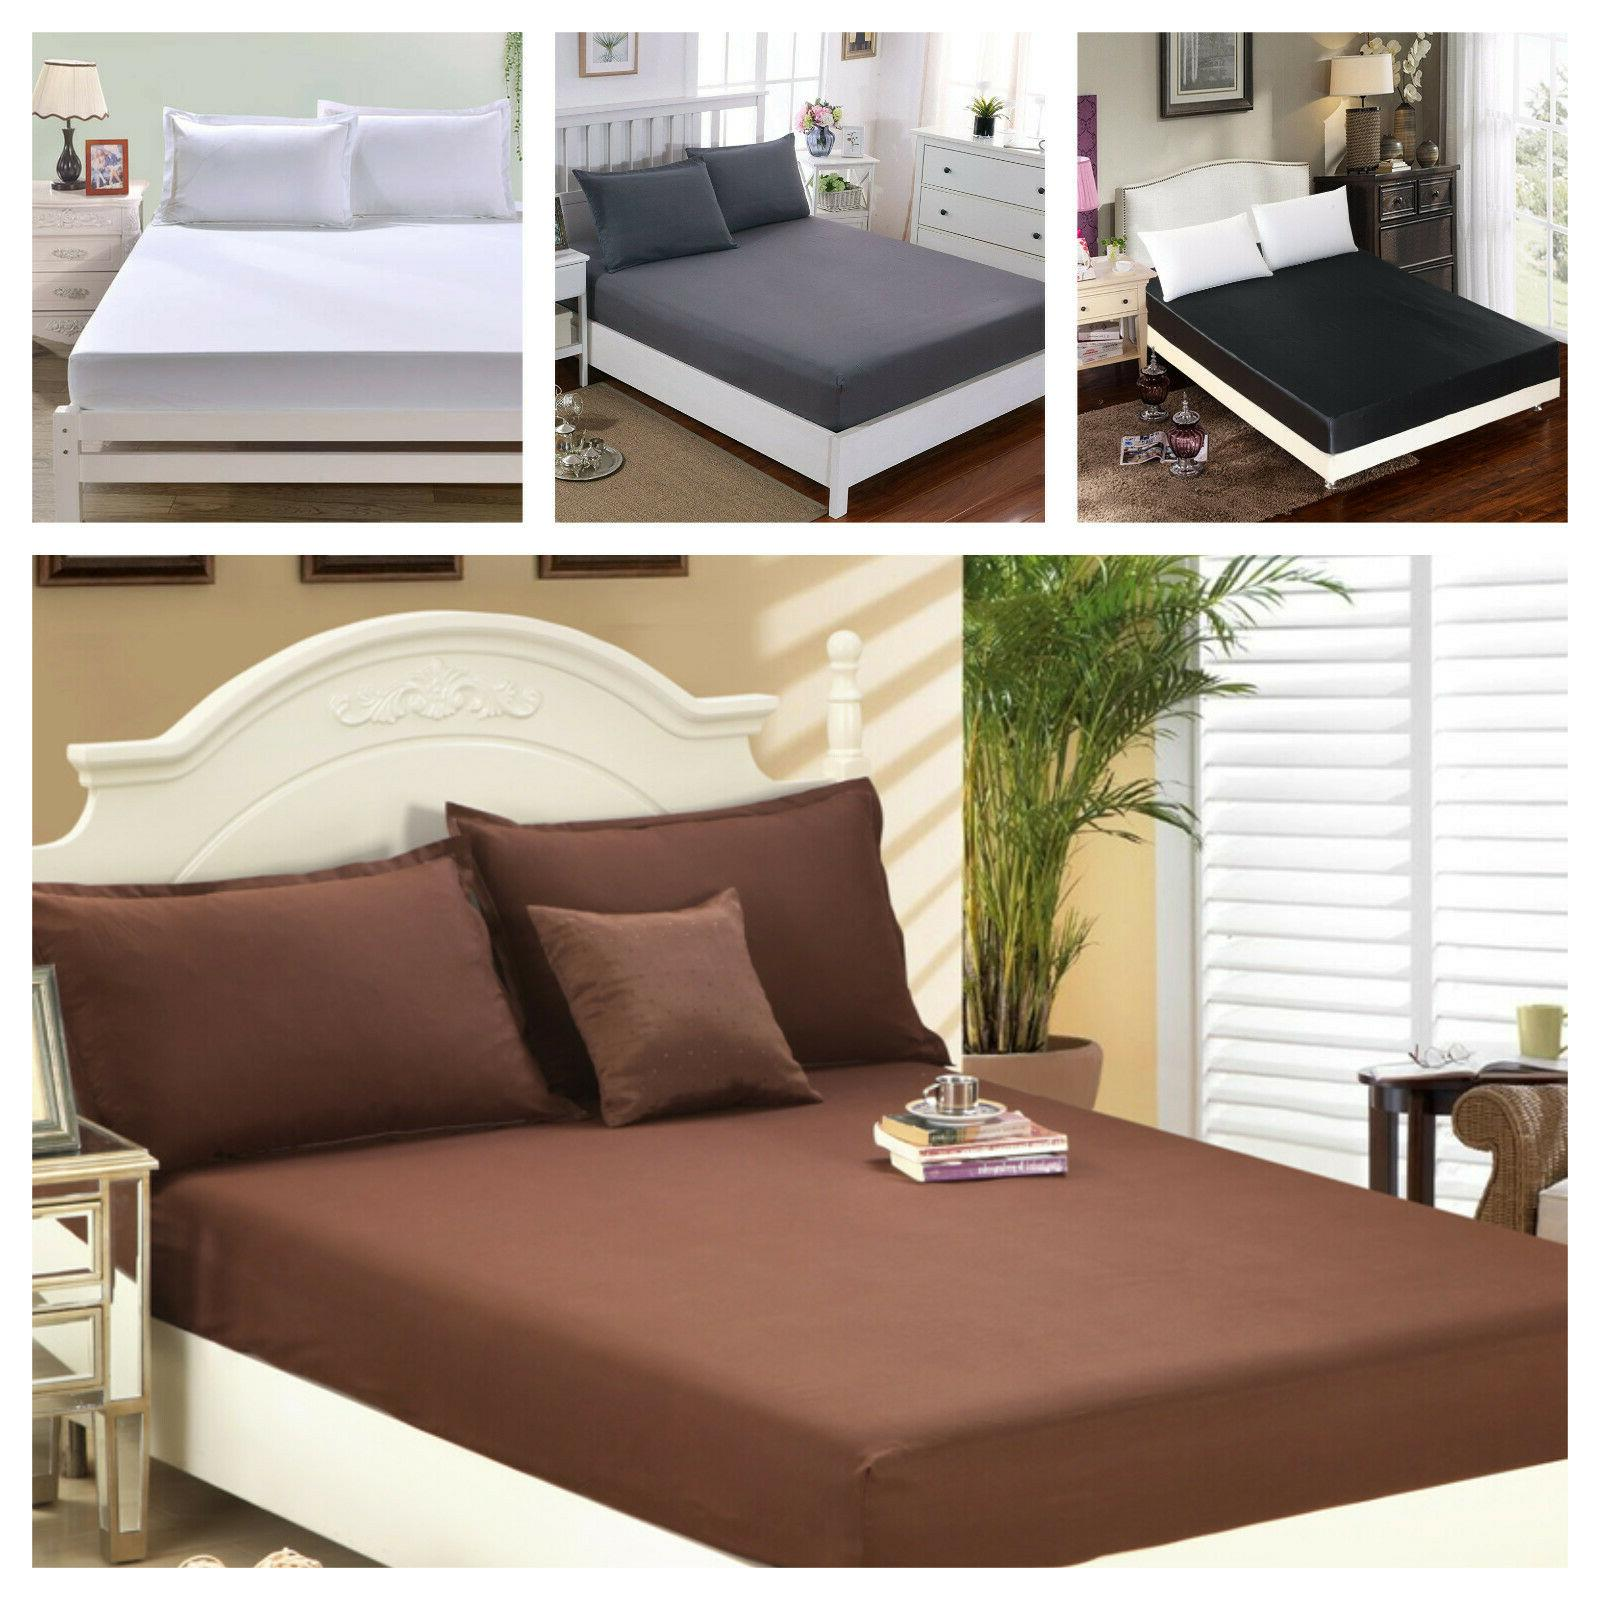 1900 count wrinkle free fitted bed sheet